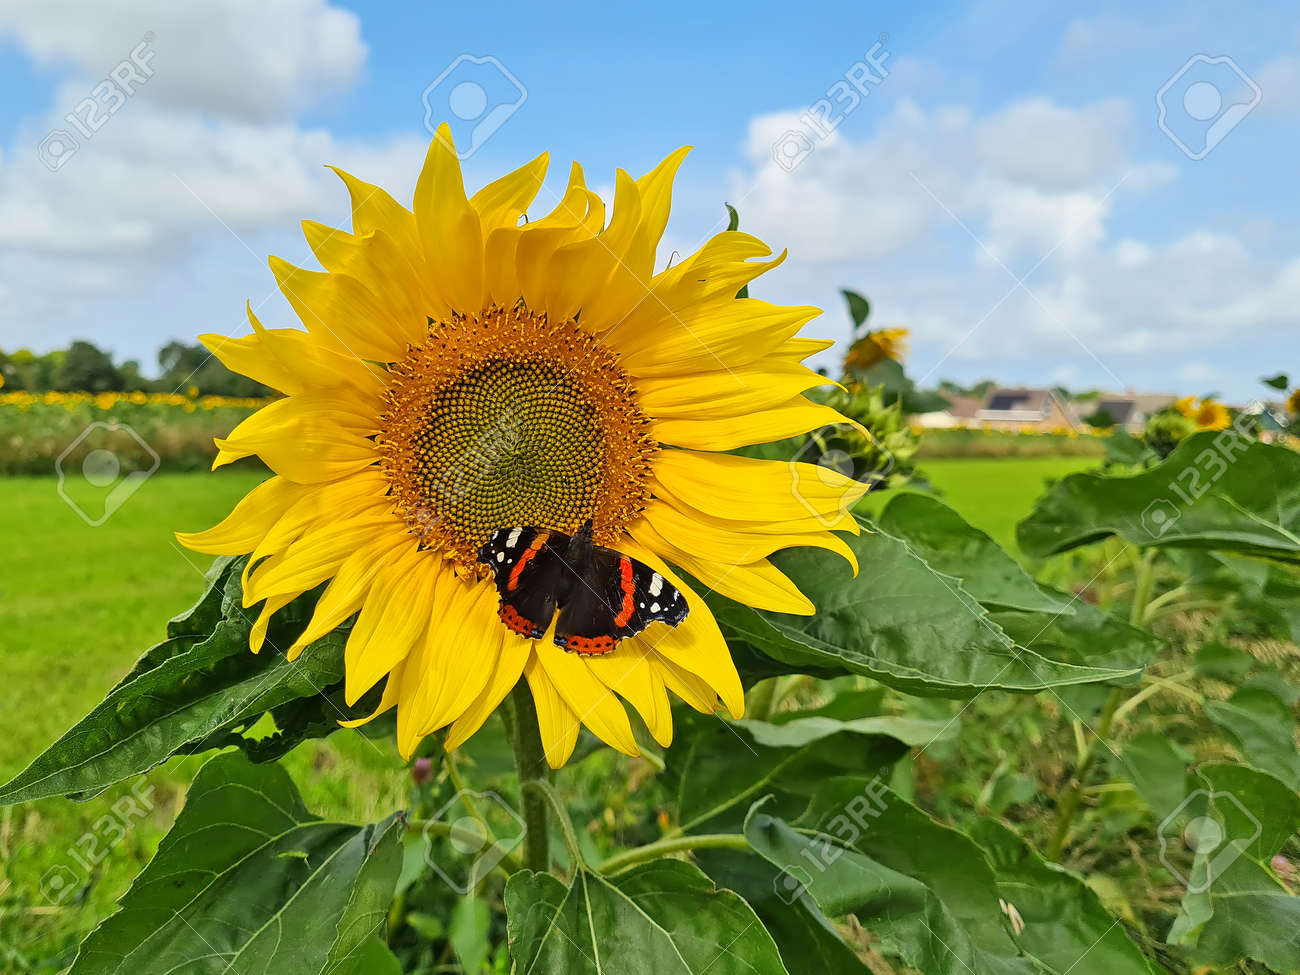 Blossoming sunflower with butterfly in the countryside from the Netherlands - 173297855